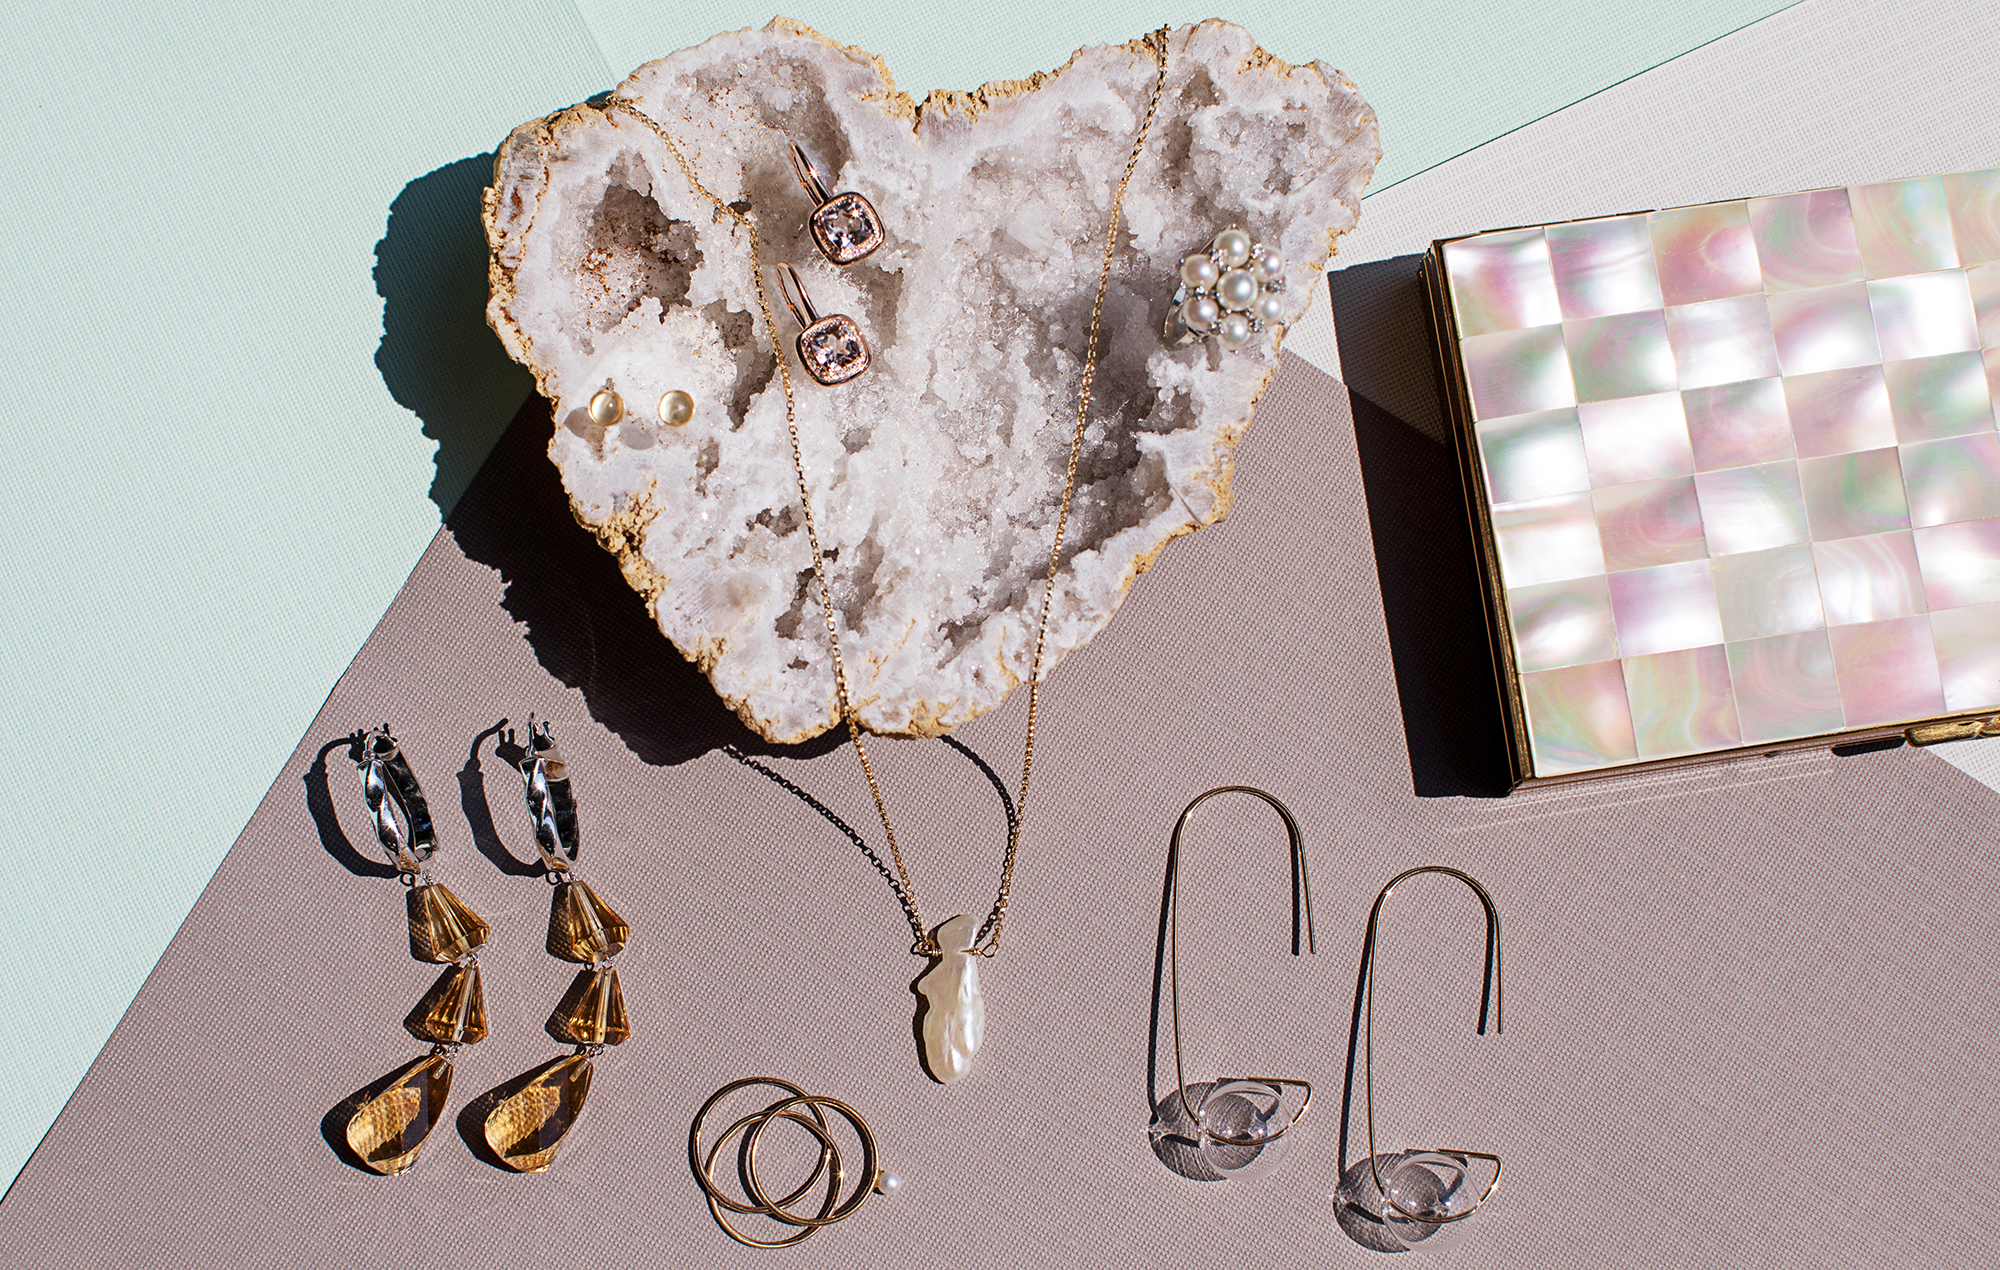 Strong finish: Jewelry for the big day | WNY Weddings